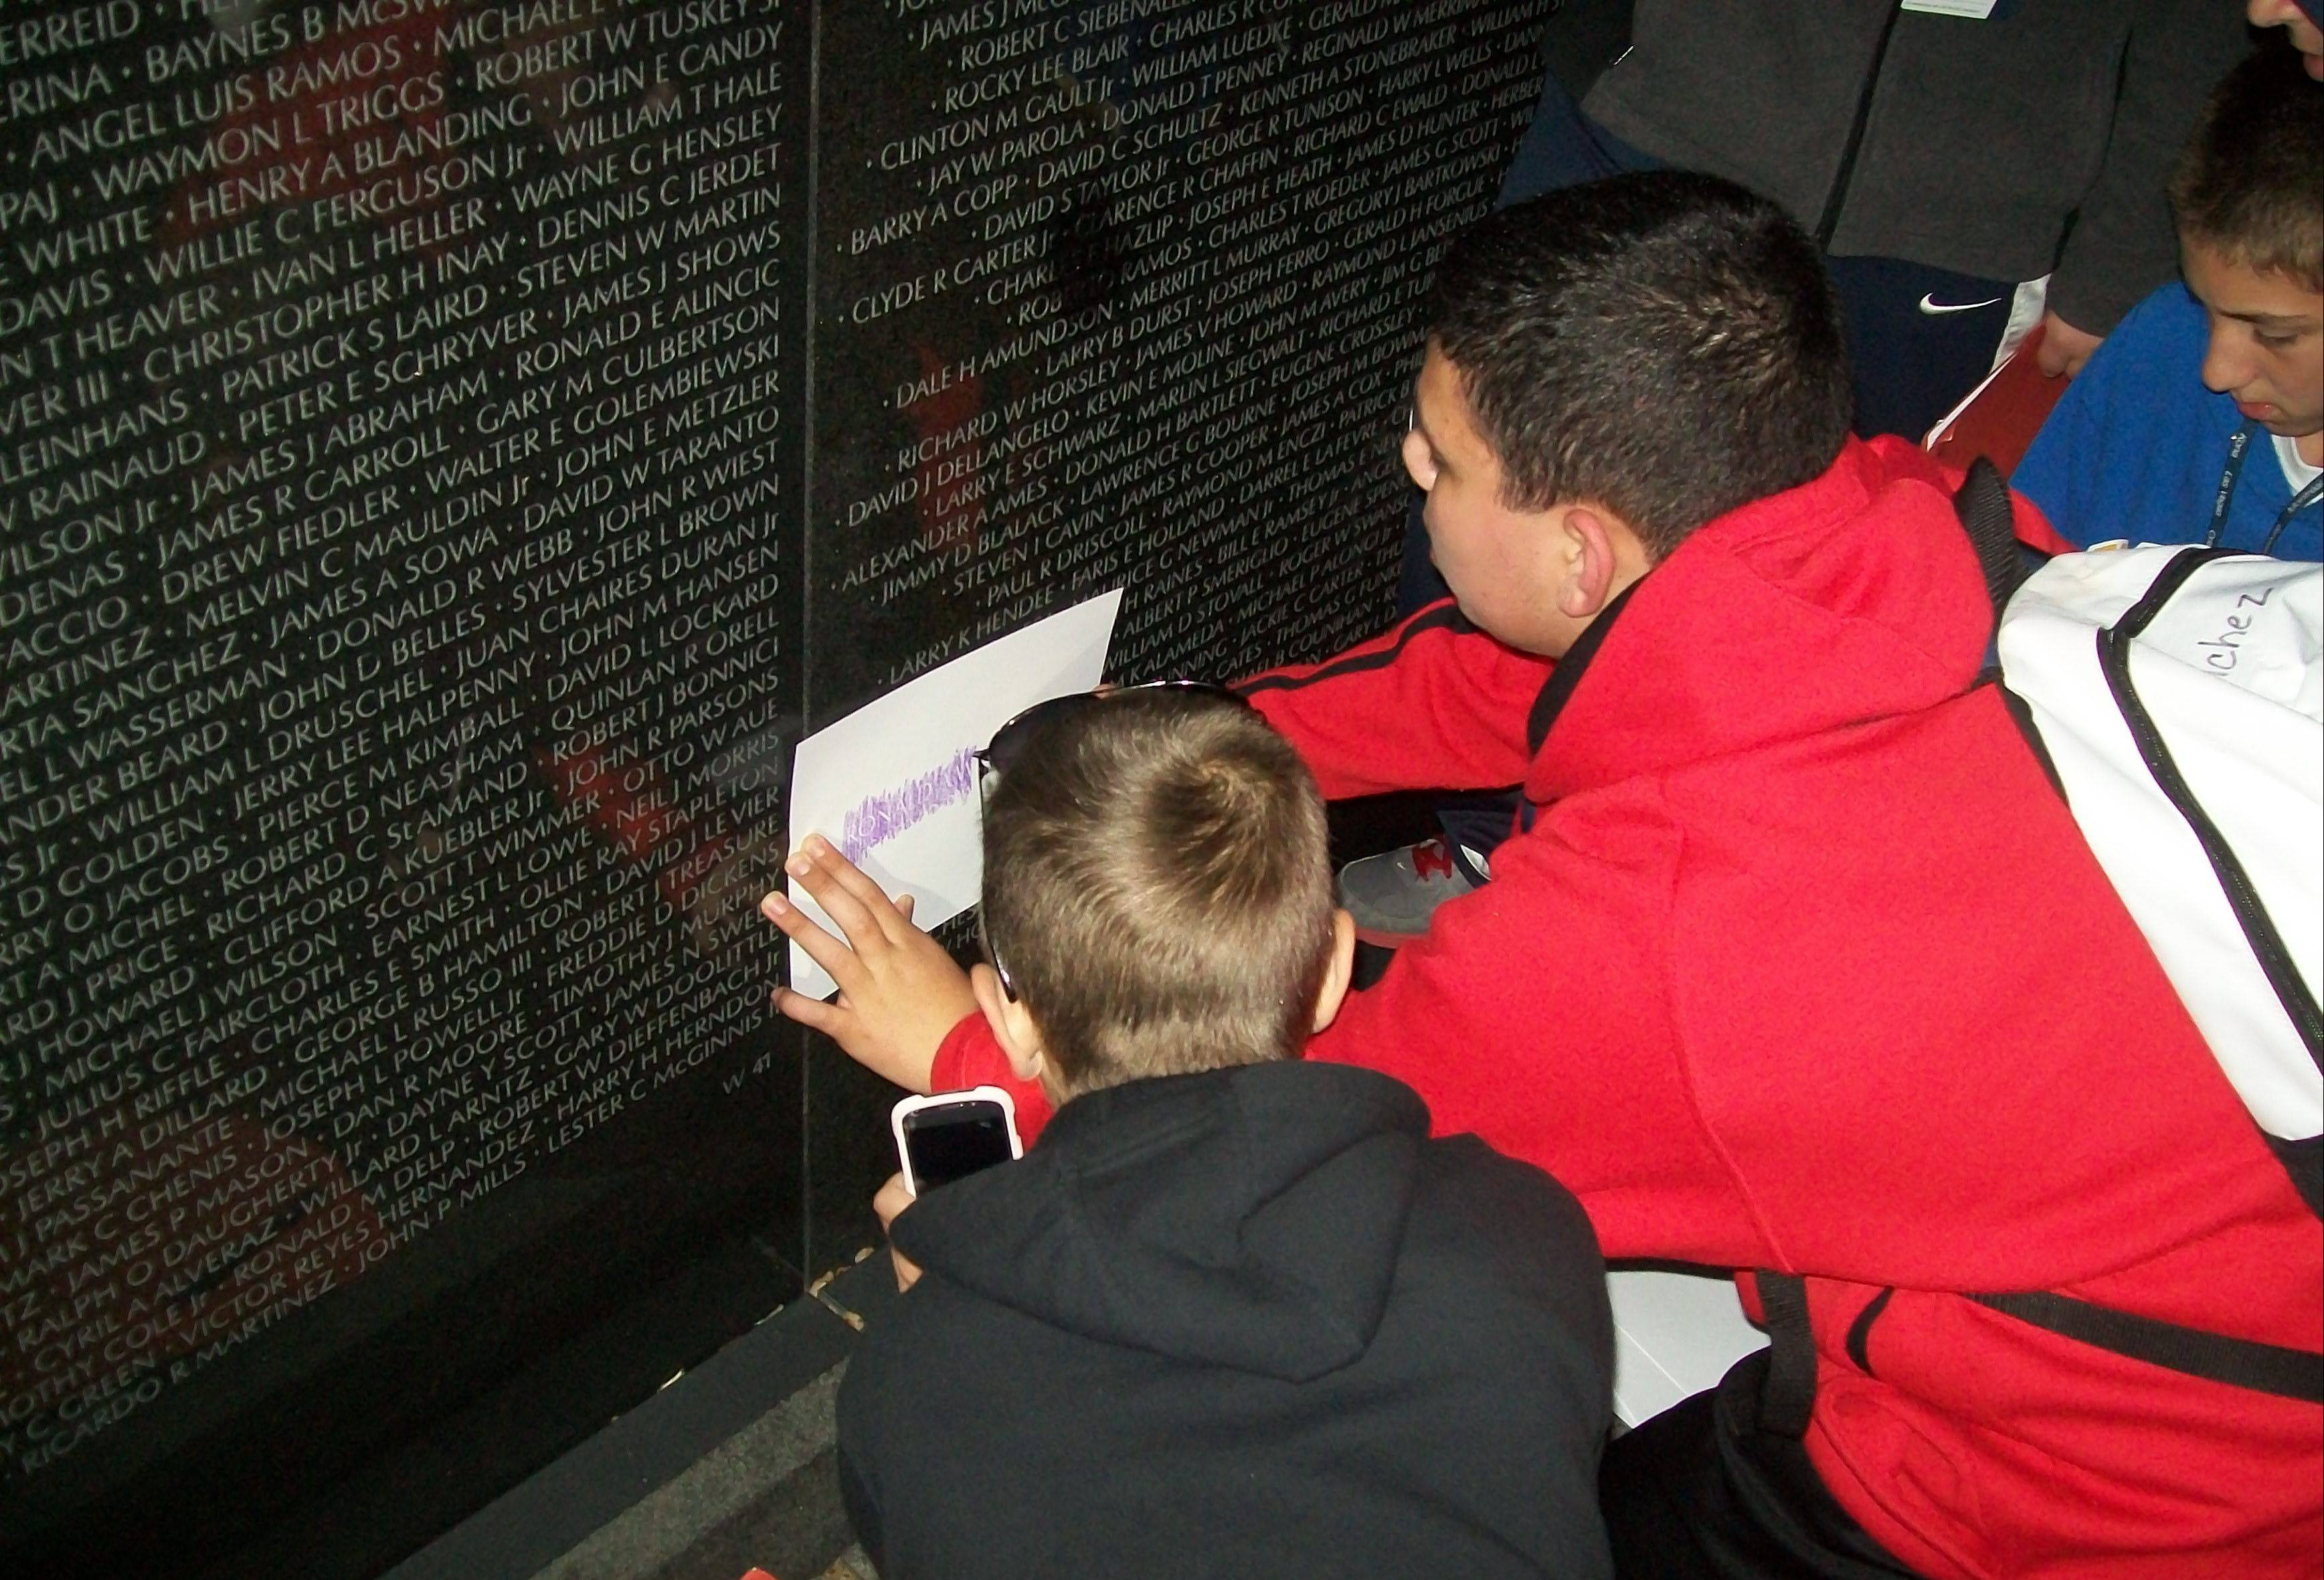 Christian Sanchez, 13, of Carpentersville, in the red jacket, rubs a print over his great uncle, Army First Lt. Ronald Wolter's name during a school trip last week to the Vietnam Veterans Memorial Wall. Wolter, of Carpentersville, was killed in combat in 1968 and has a band shell named after him in his hometown.